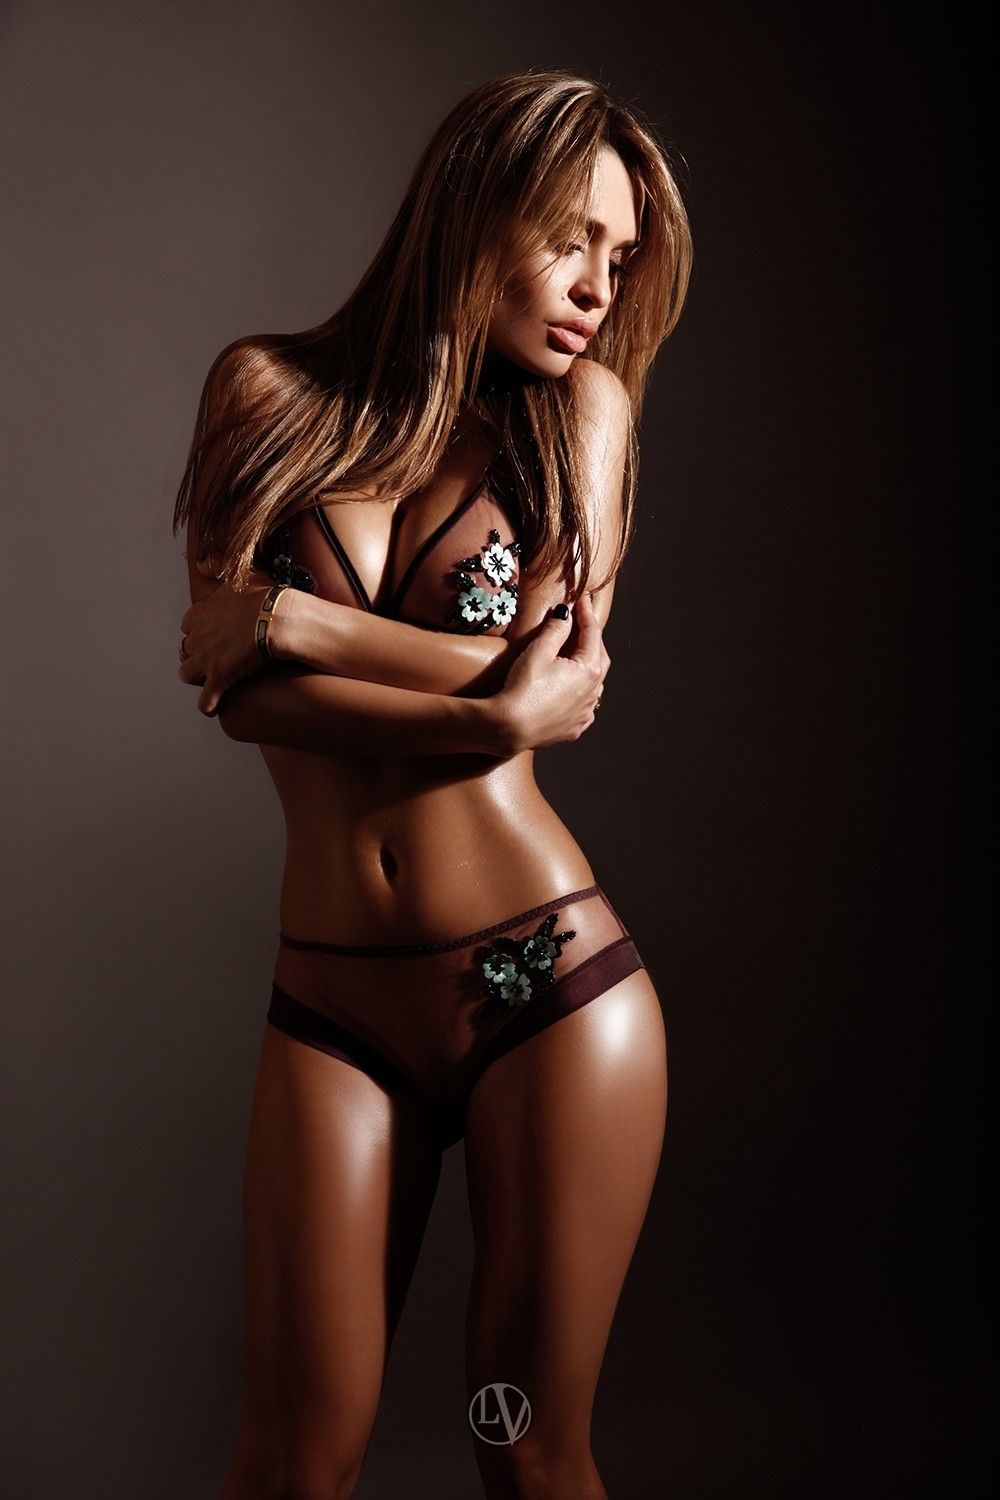 Call-girl Ally looking super hot with her tightly toned body